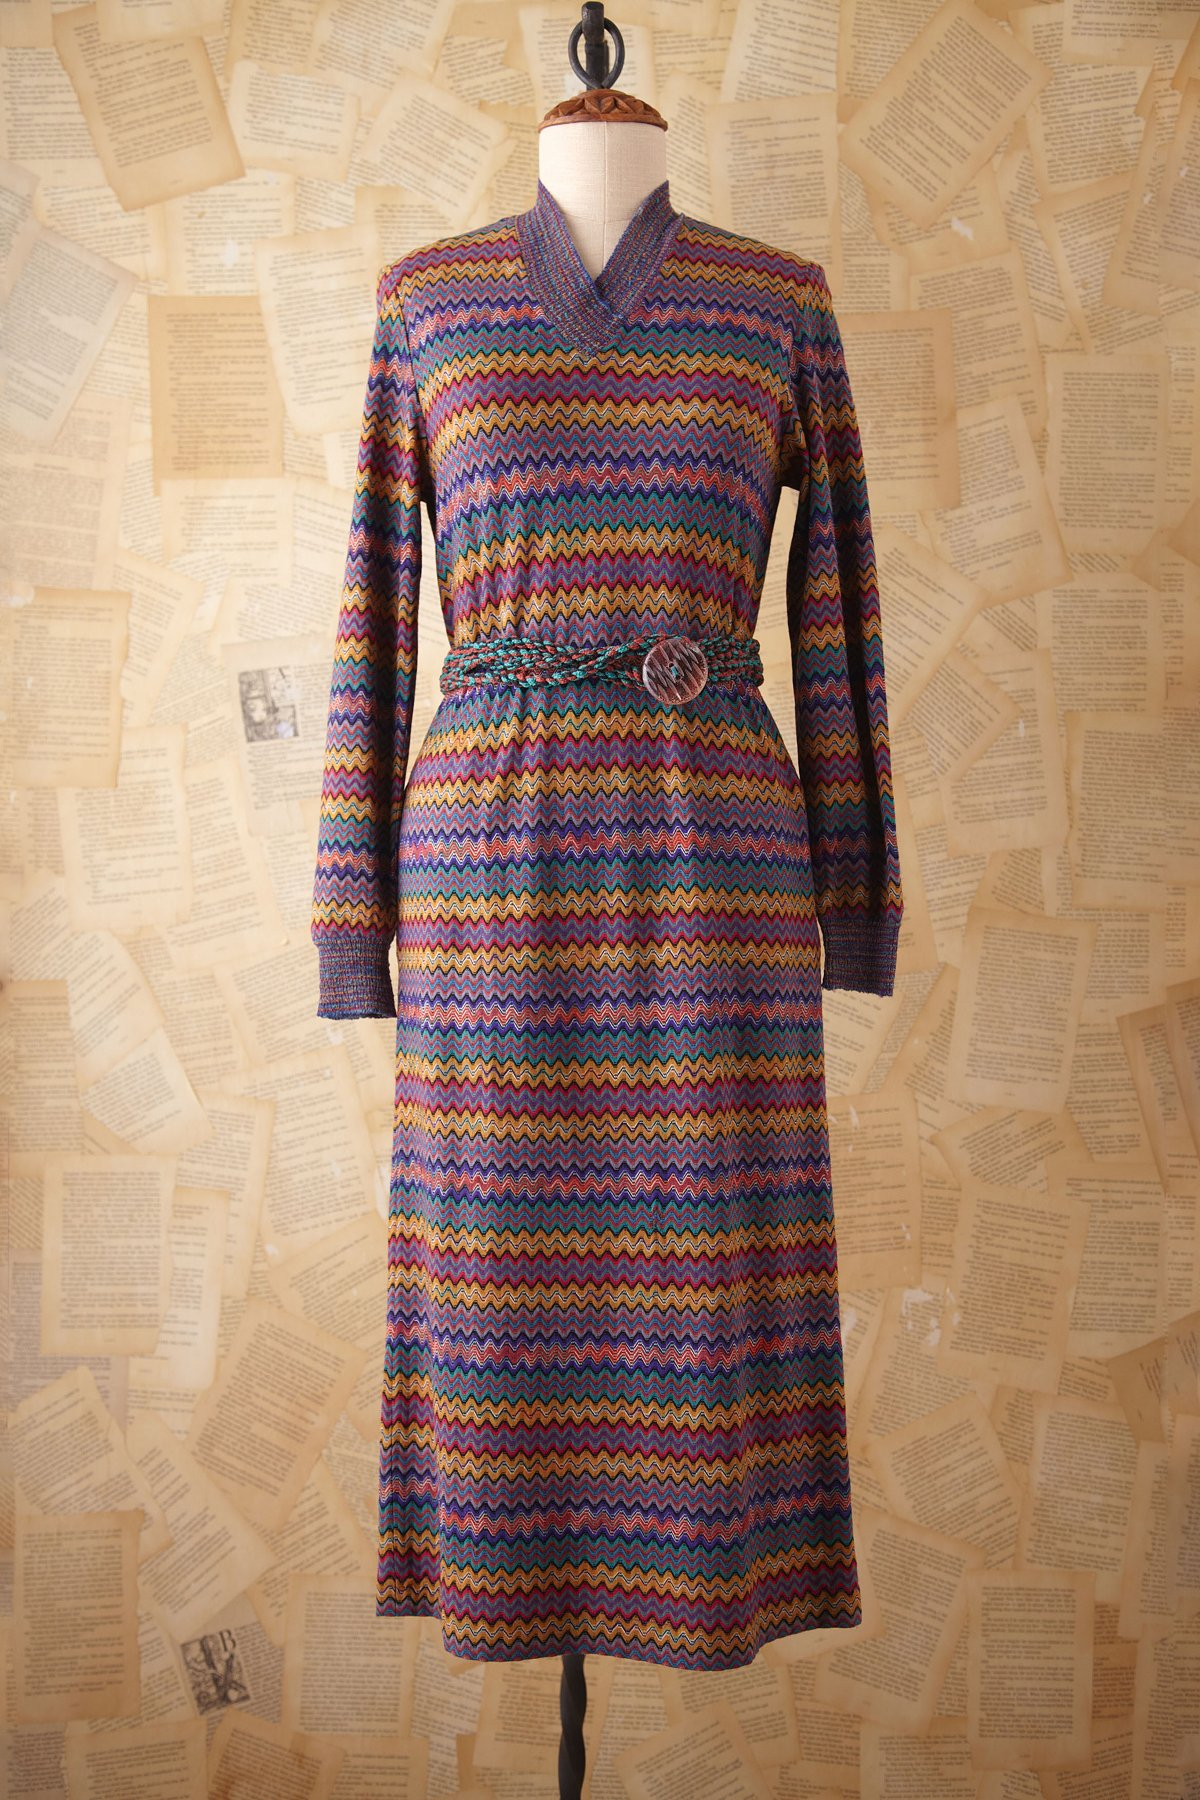 Vintage Missoni Knit Dress